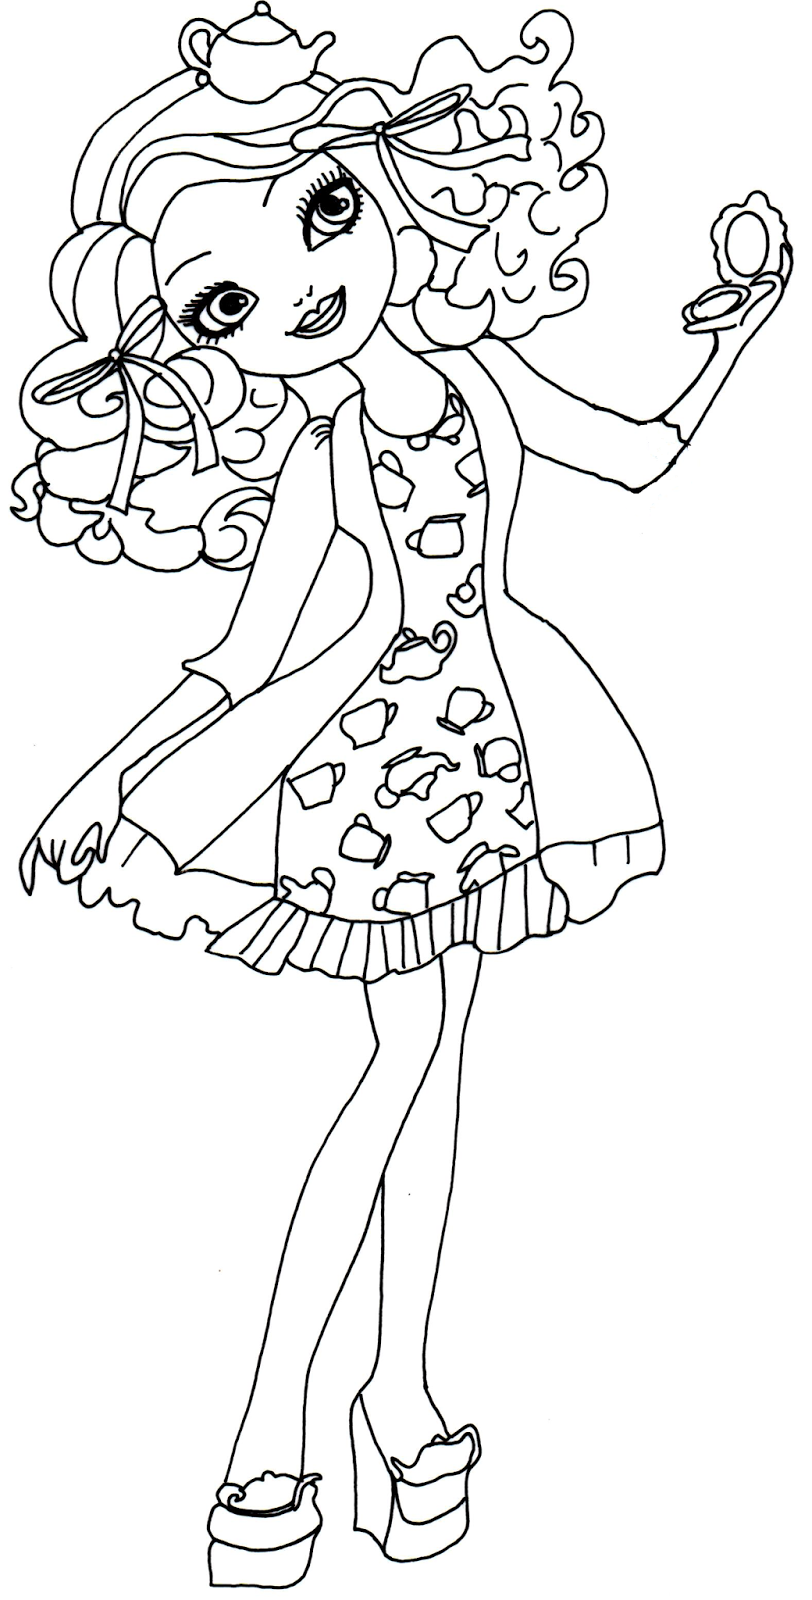 Free printable ever after high coloring pages december 2013 for Madeline coloring pages printable